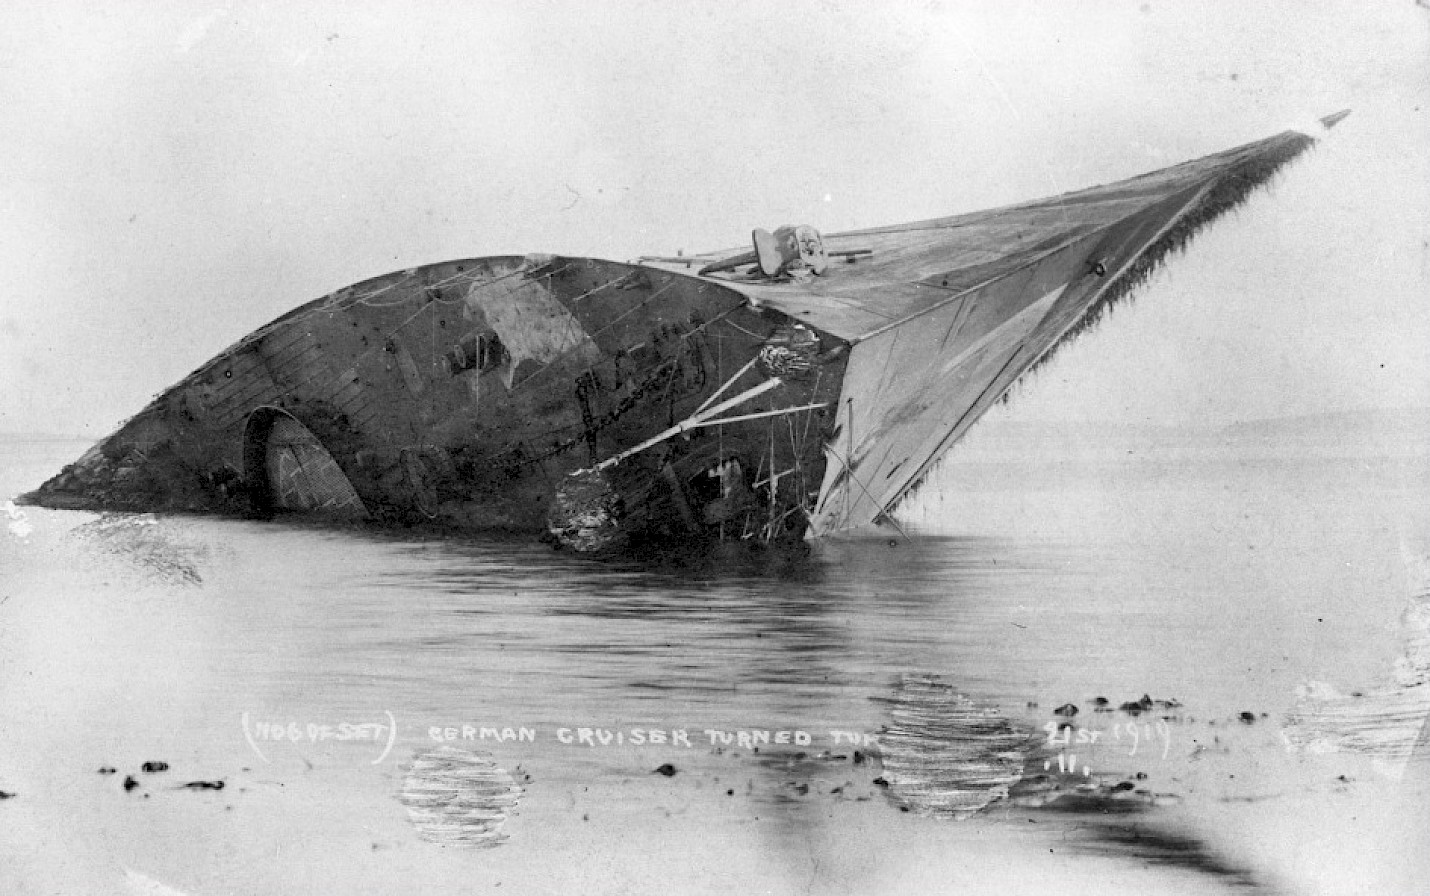 The light cruiser Bremse turned turtle in Scapa Flow - image courtesy Orkney Library & Archive